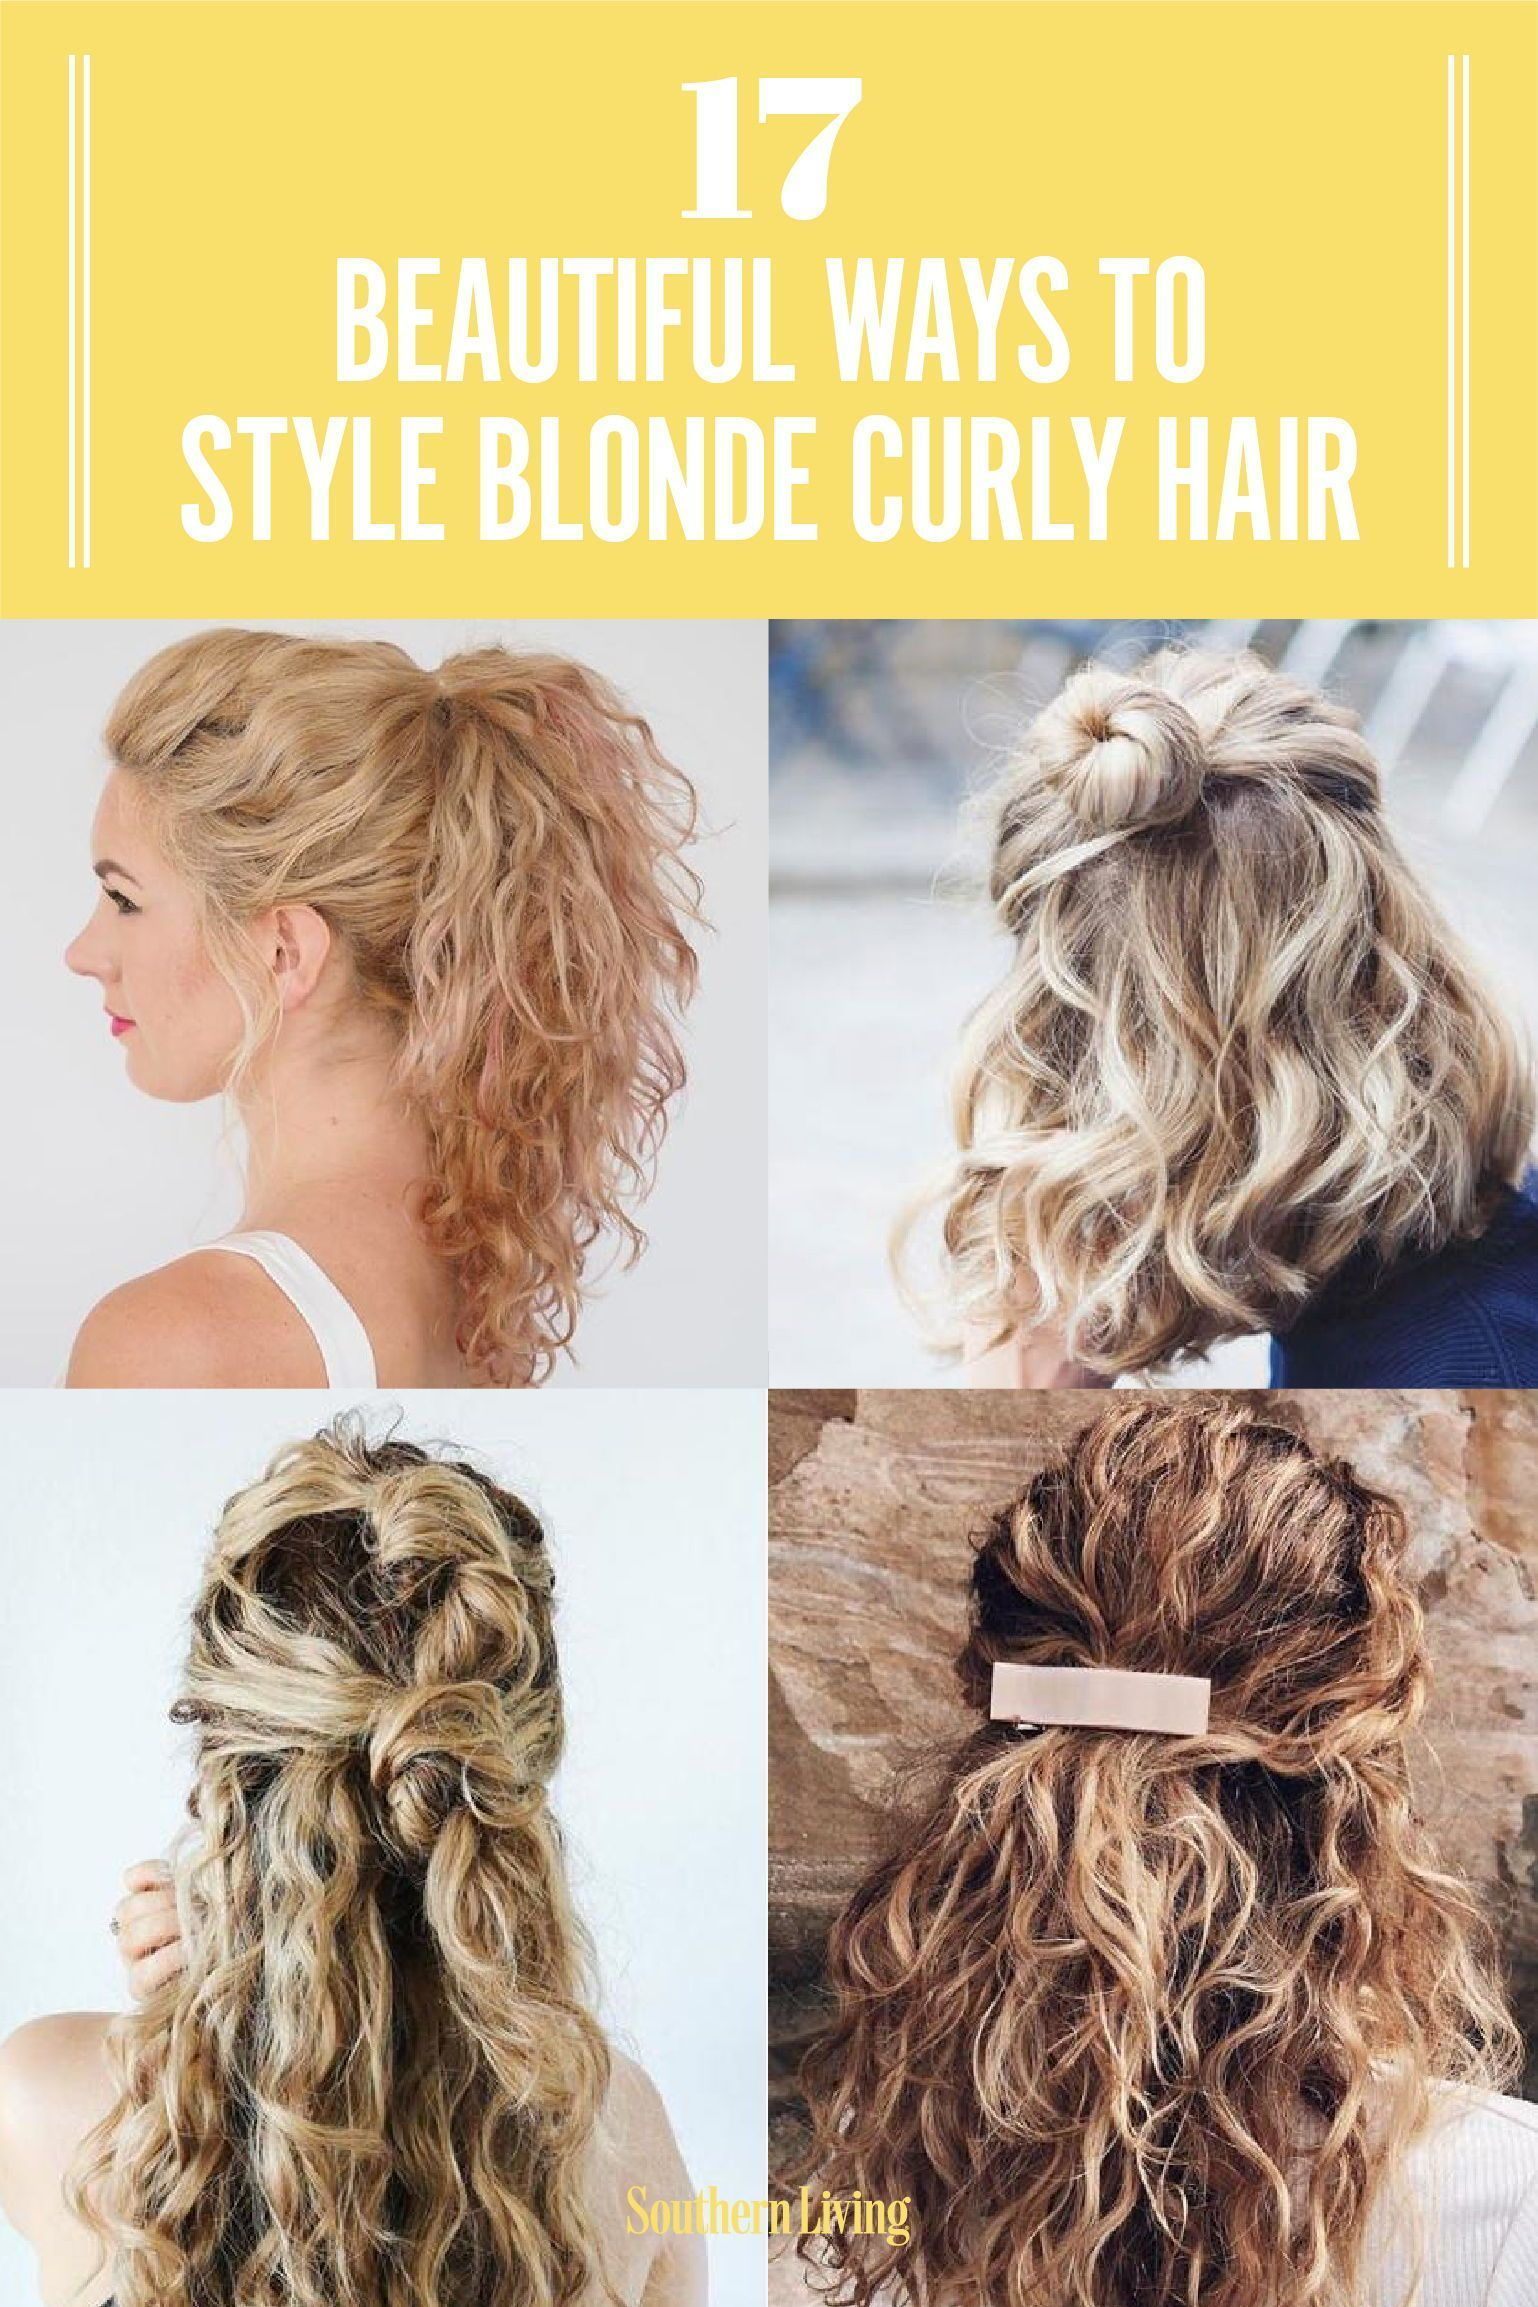 Here are 17 easy hairstyles for blonde curly hair that will turn your most uninspired hair days into show-stopping ones. are 17 easy hairstyles for blonde curly hair that will turn your most uninspired hair days into show-stopping ones.